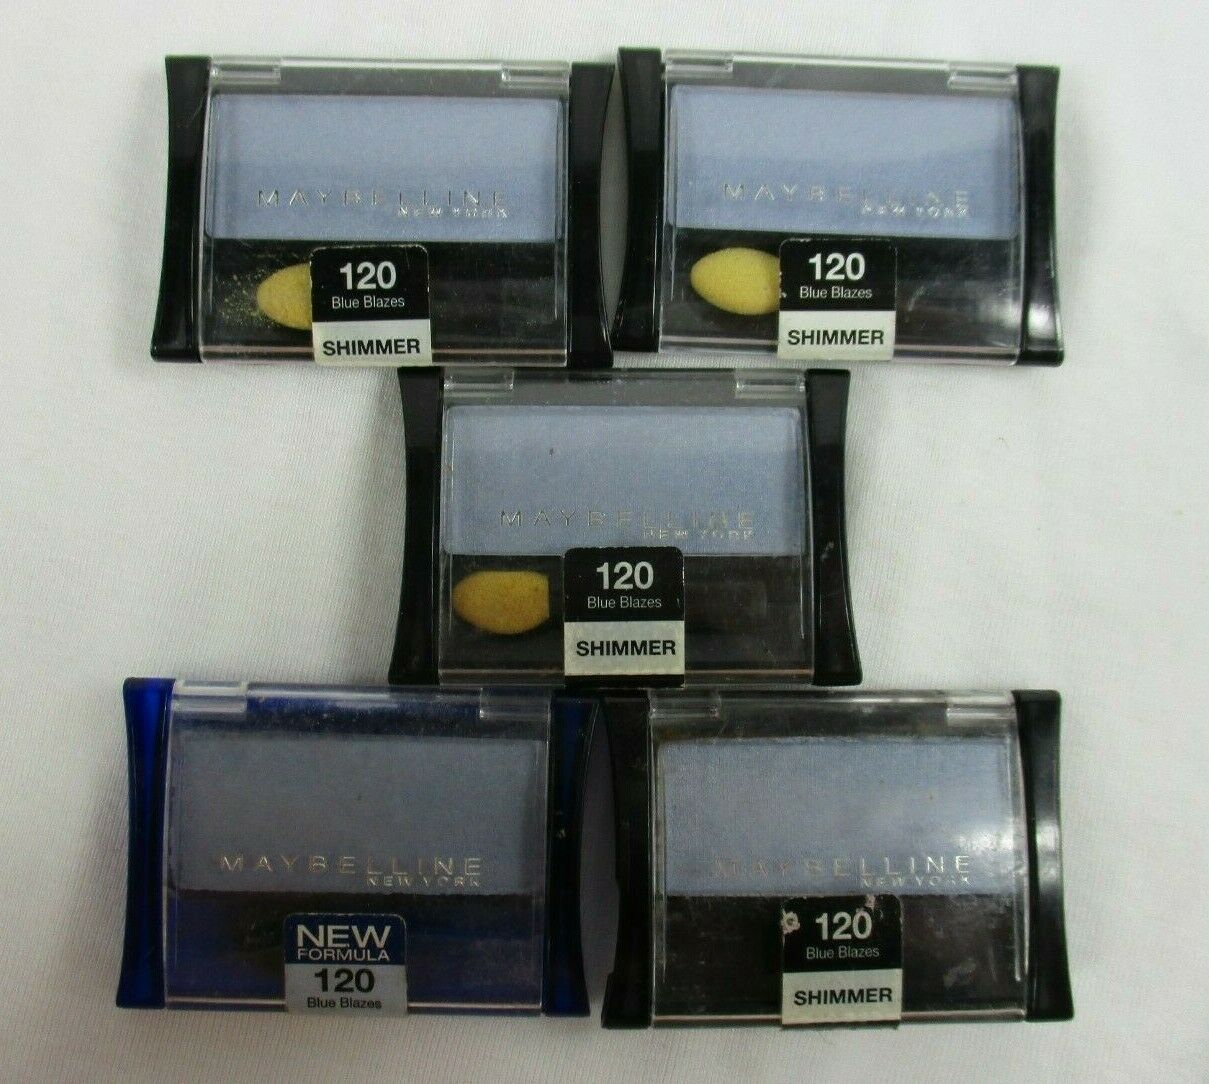 Maybelline New York Expert Wear Eyeshadow Singles, 120 Blue